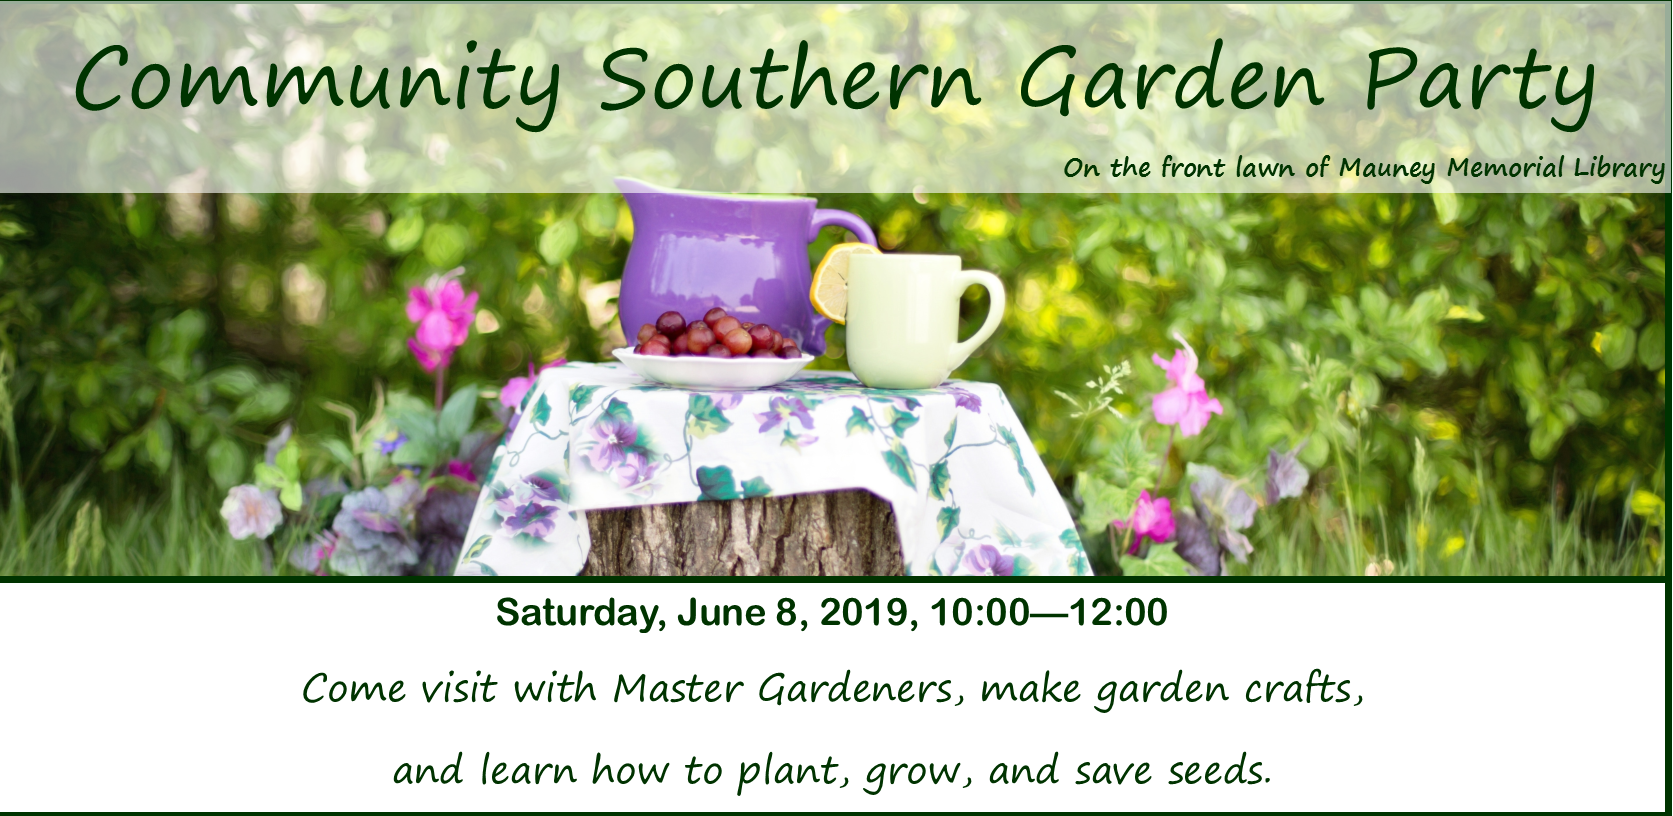 Community Southern Garden Party